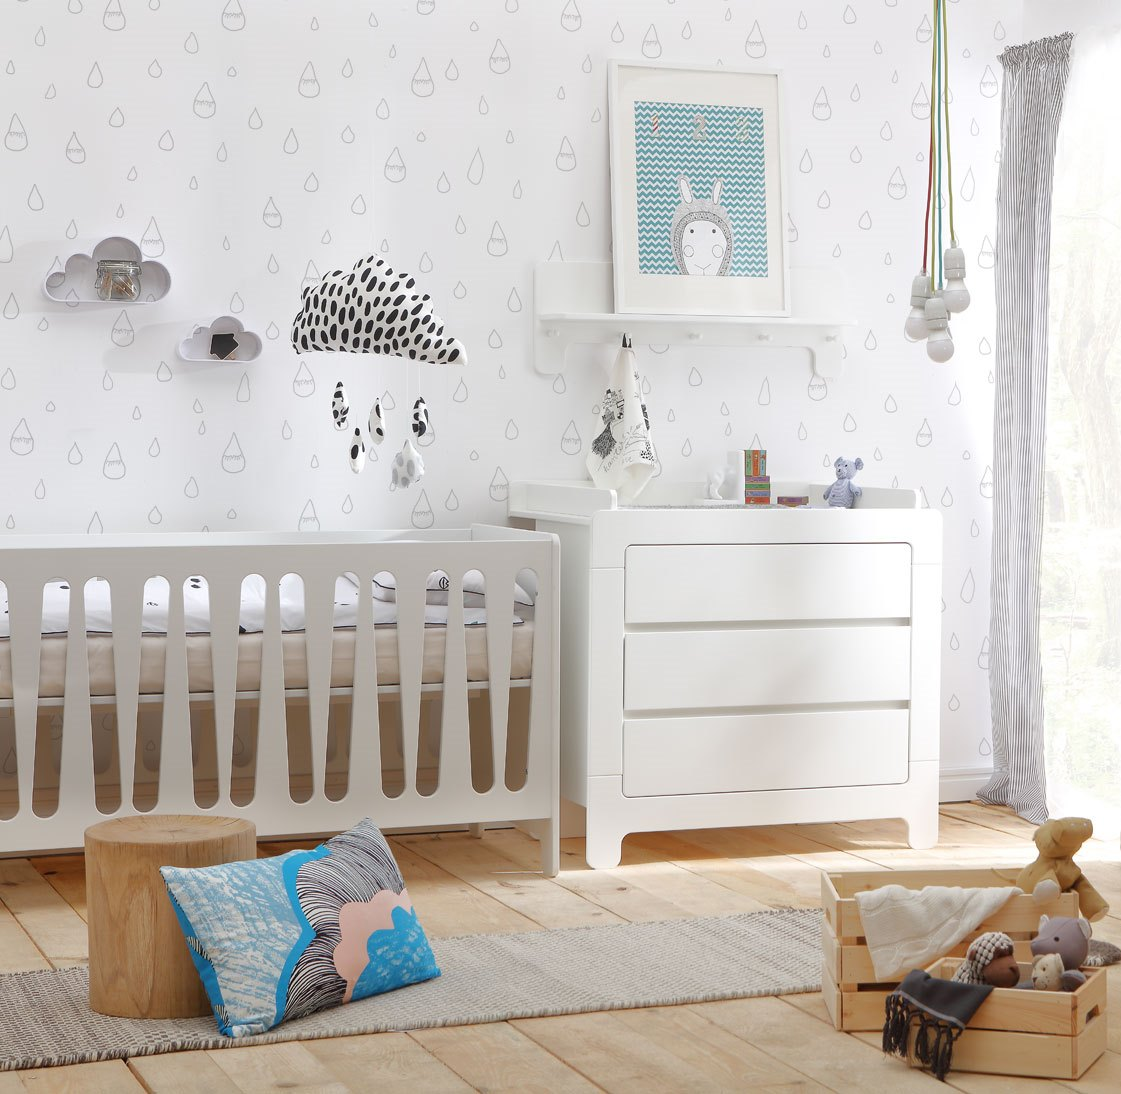 nouveaute 2016 collection moon pinio chambre b b volutive baby boutique en ligne. Black Bedroom Furniture Sets. Home Design Ideas